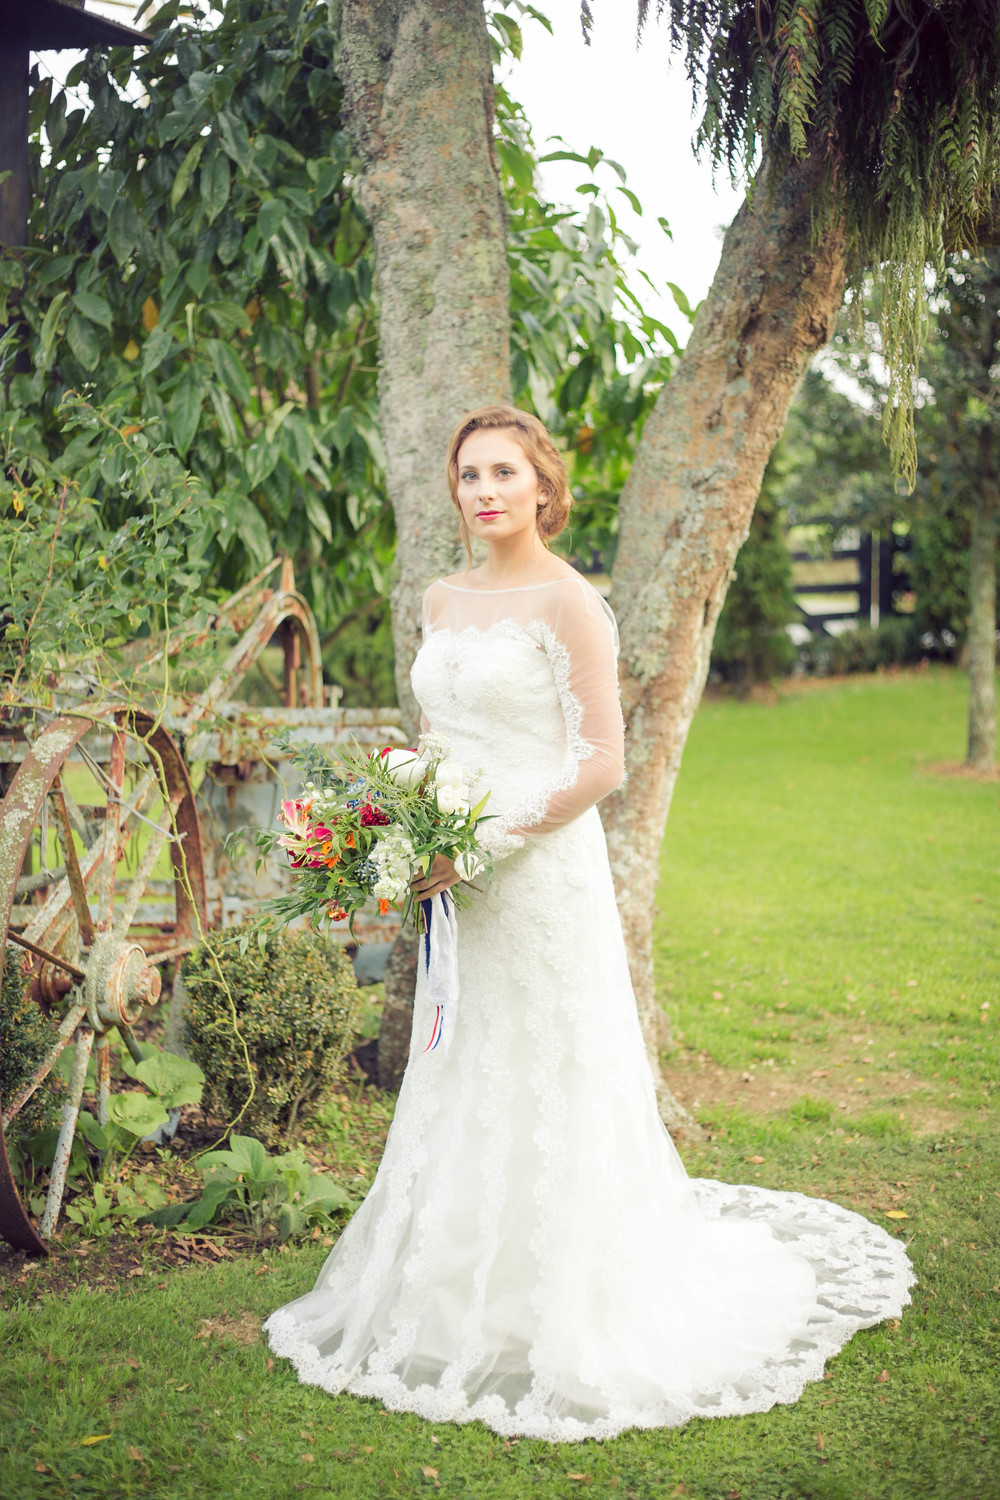 Wedding dress inspiration | Dutch wedding shoot | Photography by Tranquility Photography | Gown available at Astra Bridal | www.borrowedandblue.kiwi